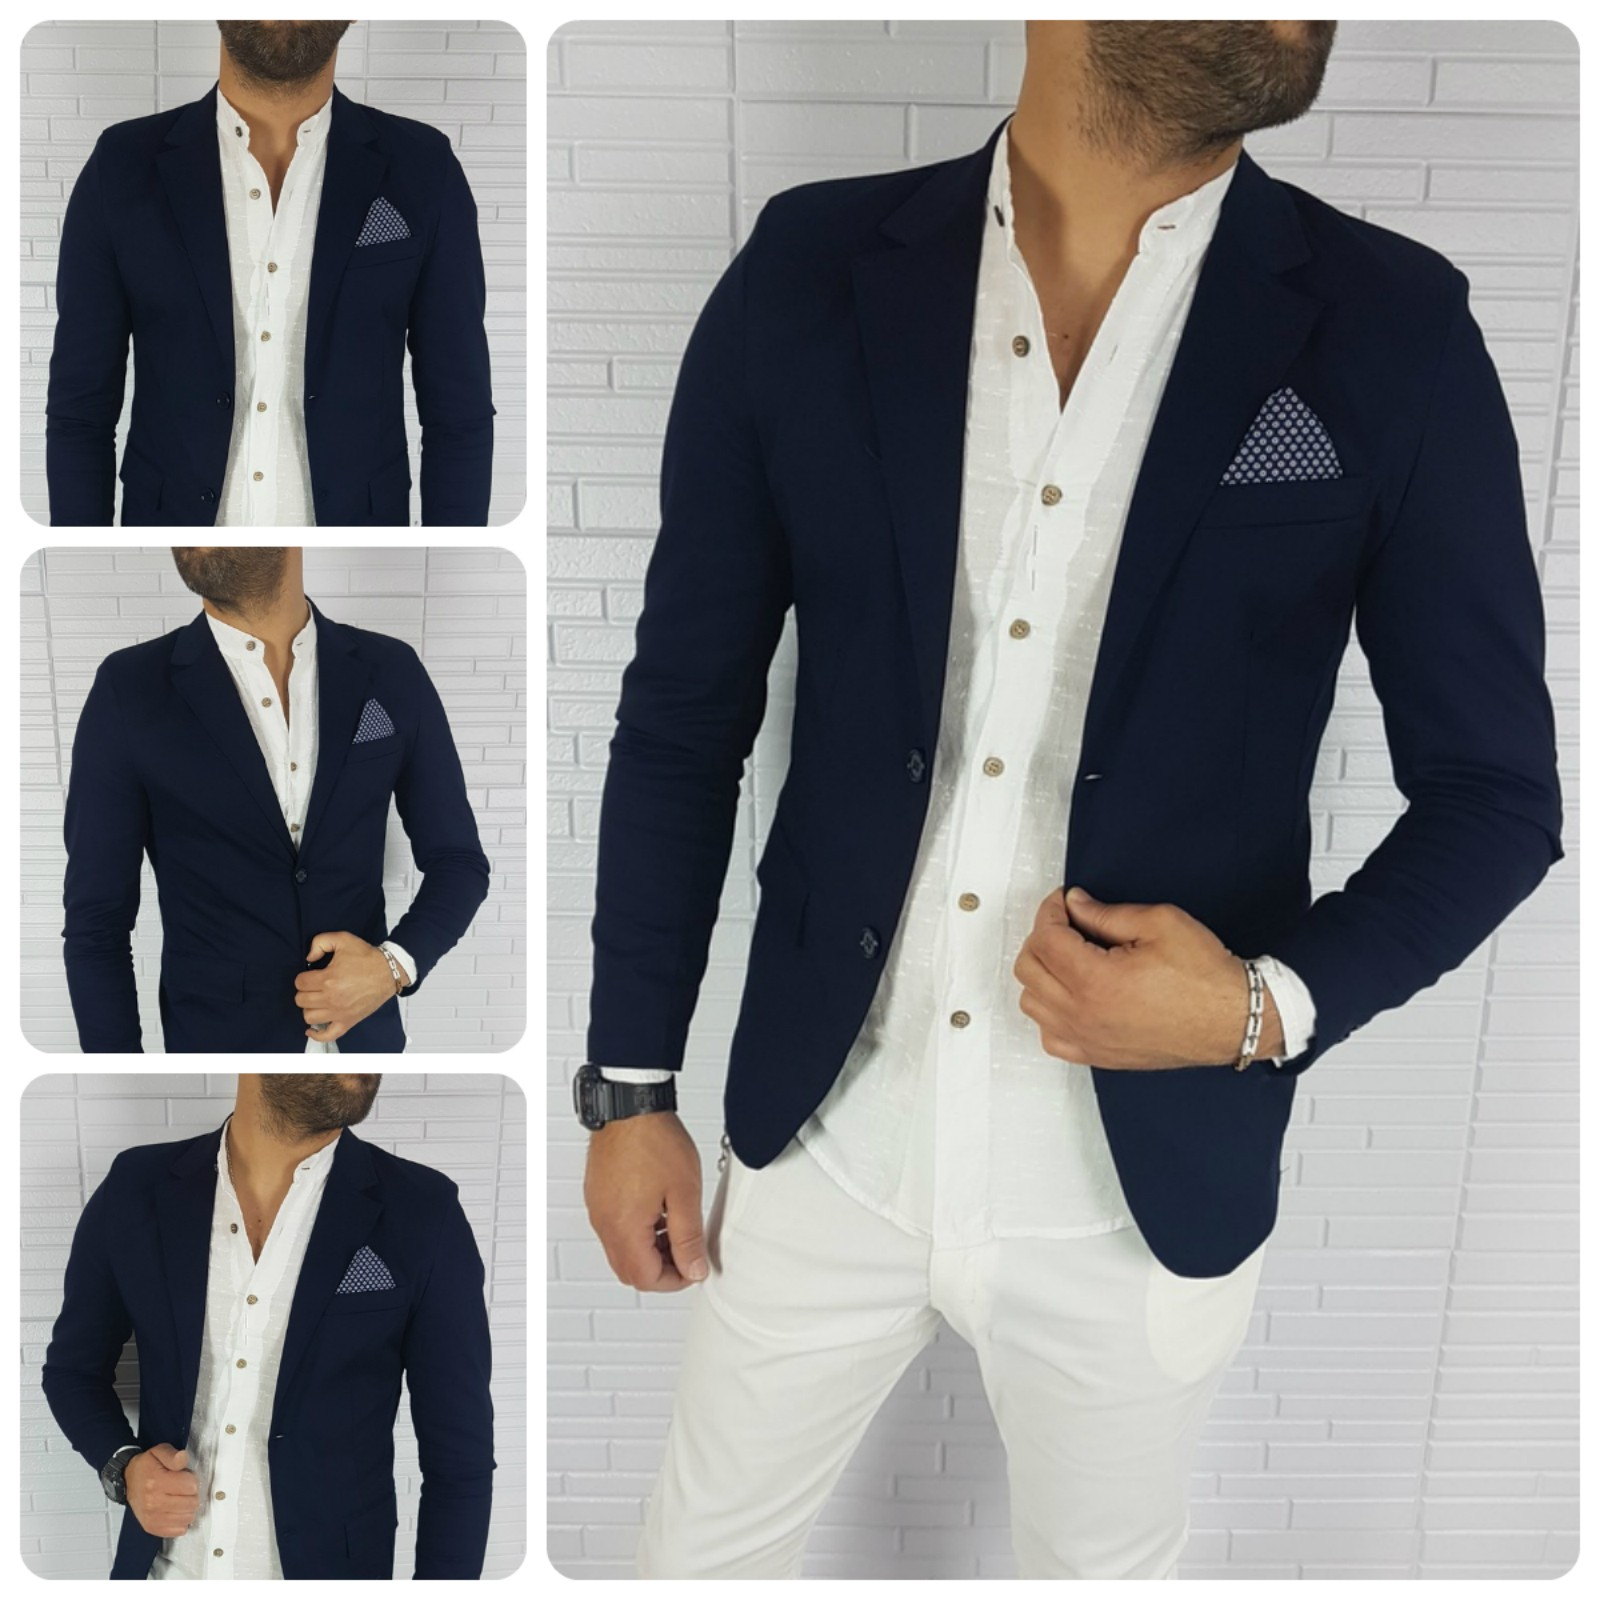 reputable site 7af75 2a762 GIACCA UOMO BLU SLIM FIT TOPPE